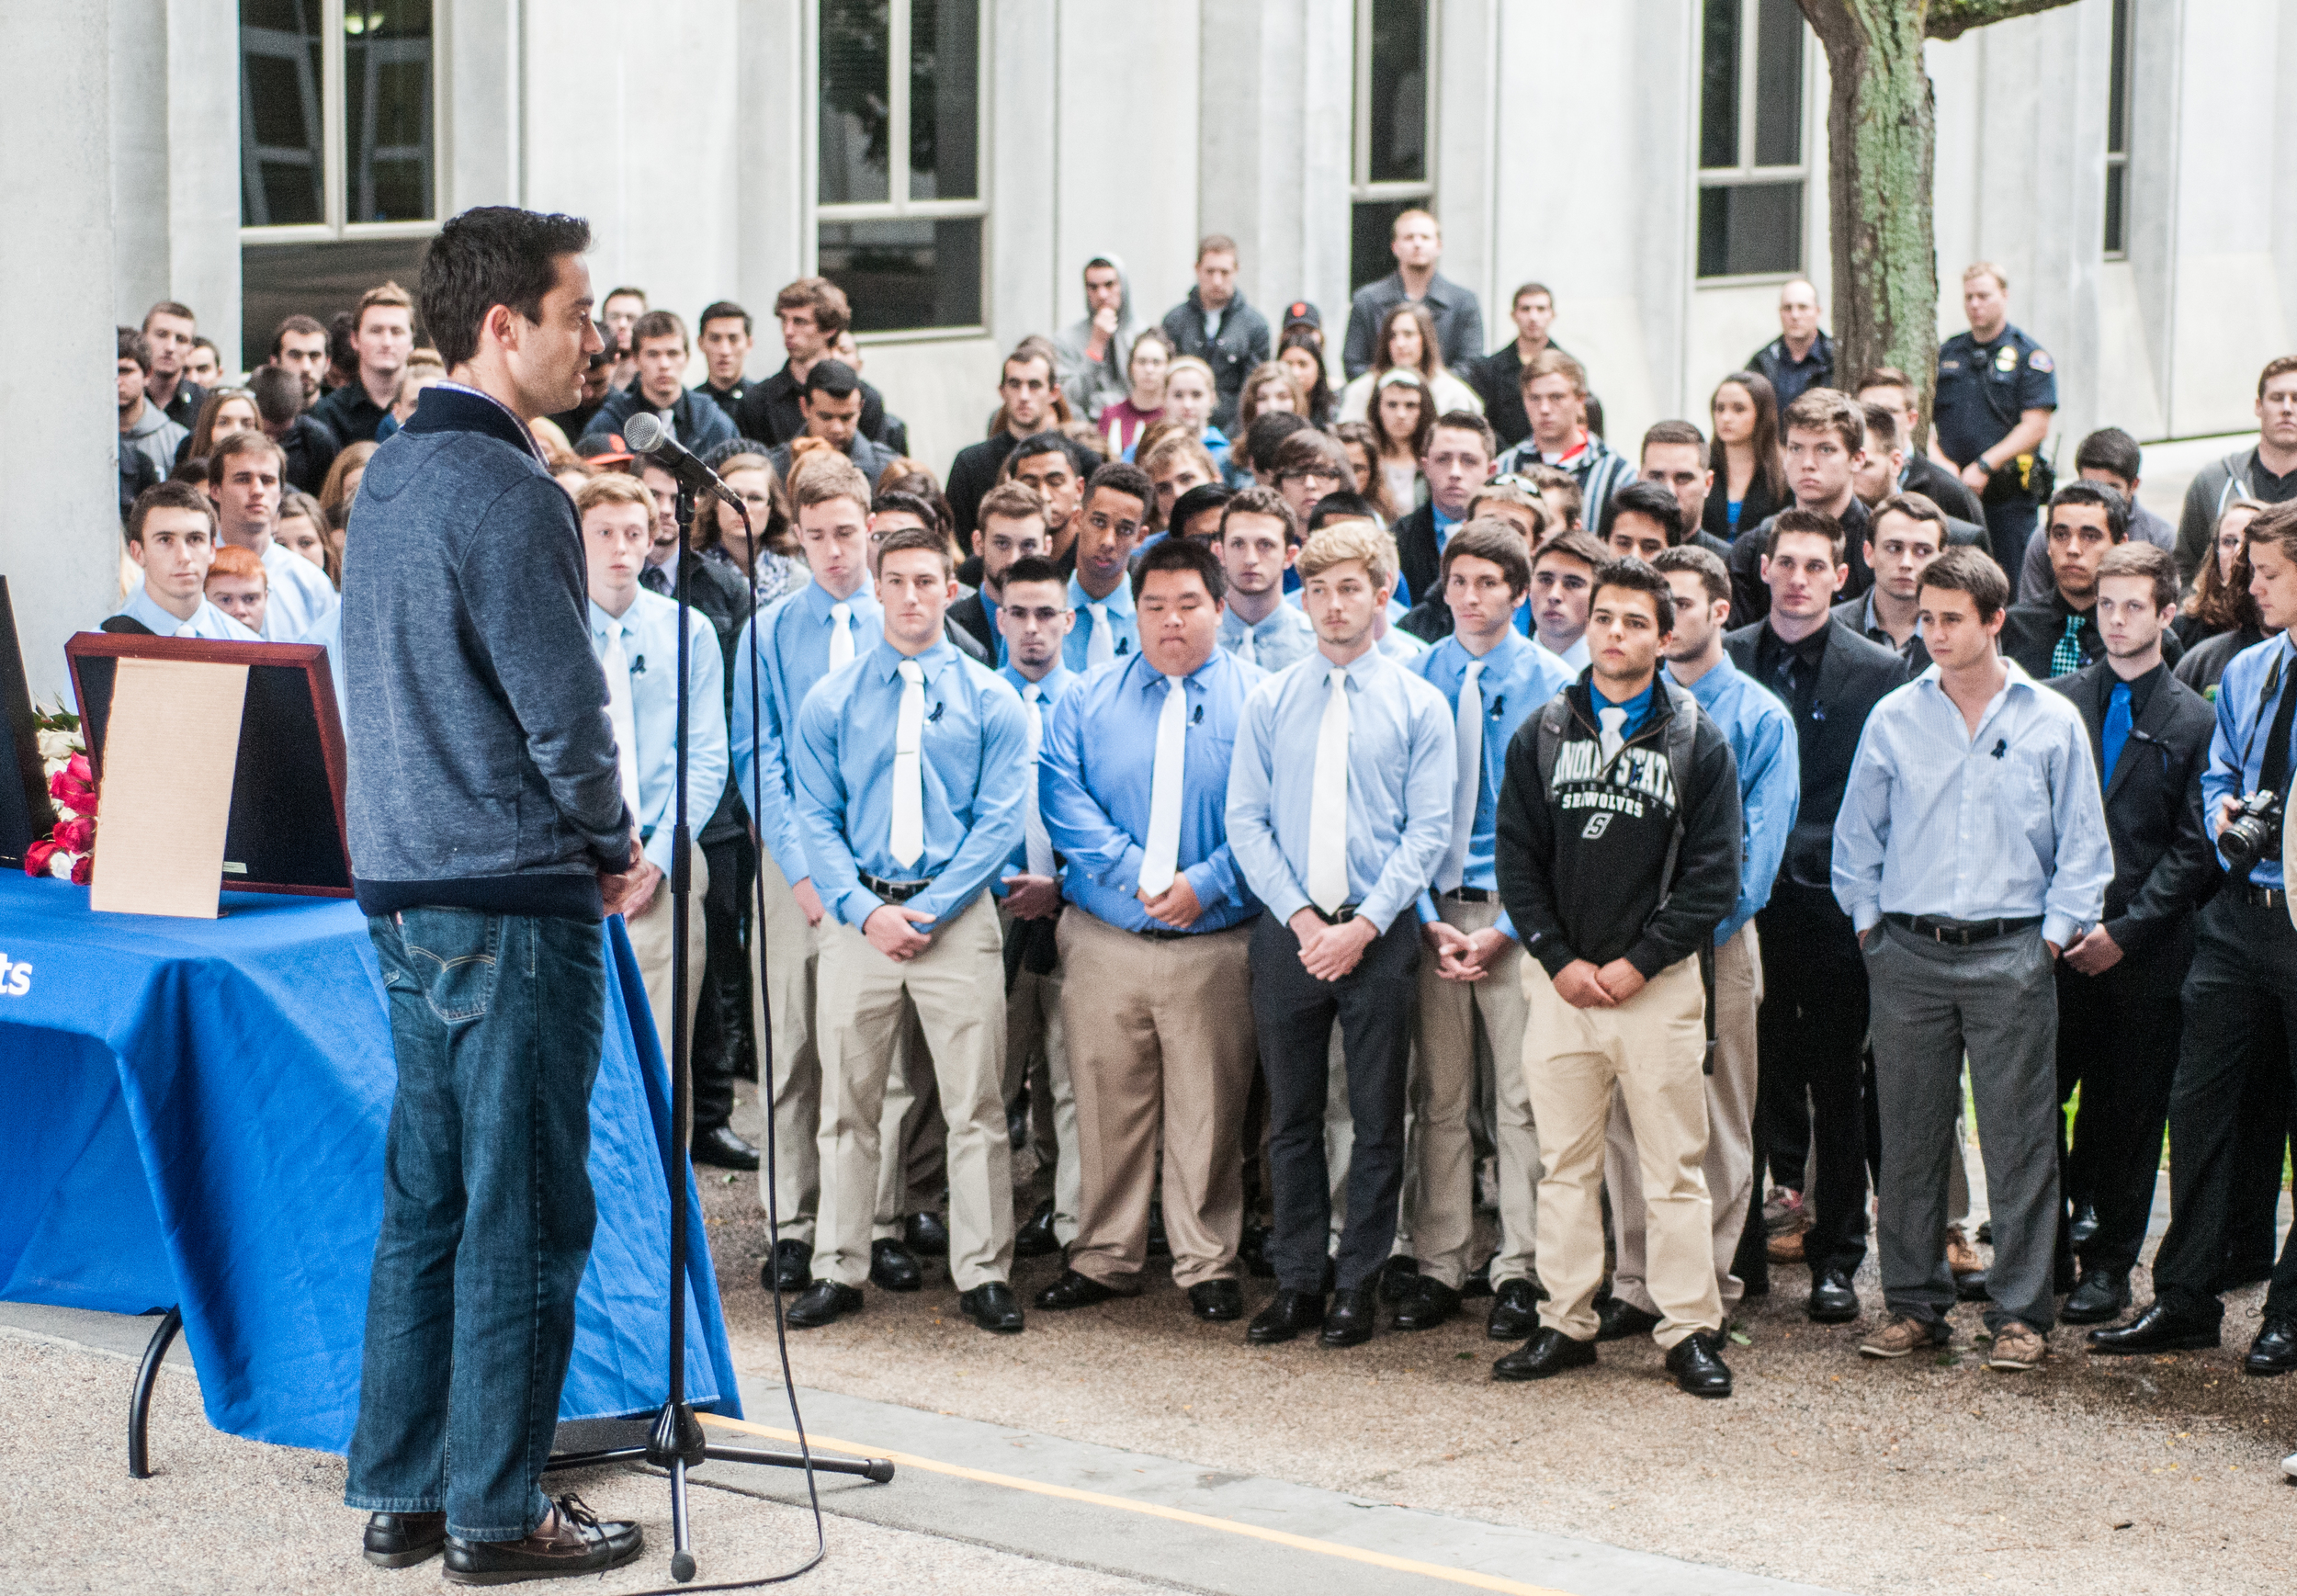 STAR // Gustavo Vasquez   On Friday Sonoma State University students held a memorial for a Southern California law enforcement officer, Eugene Kostiuchenk, who lost his life in a hit-and-run accident resulting from drunk driving. He was the father of Sonoma State junior Justin Kelley.